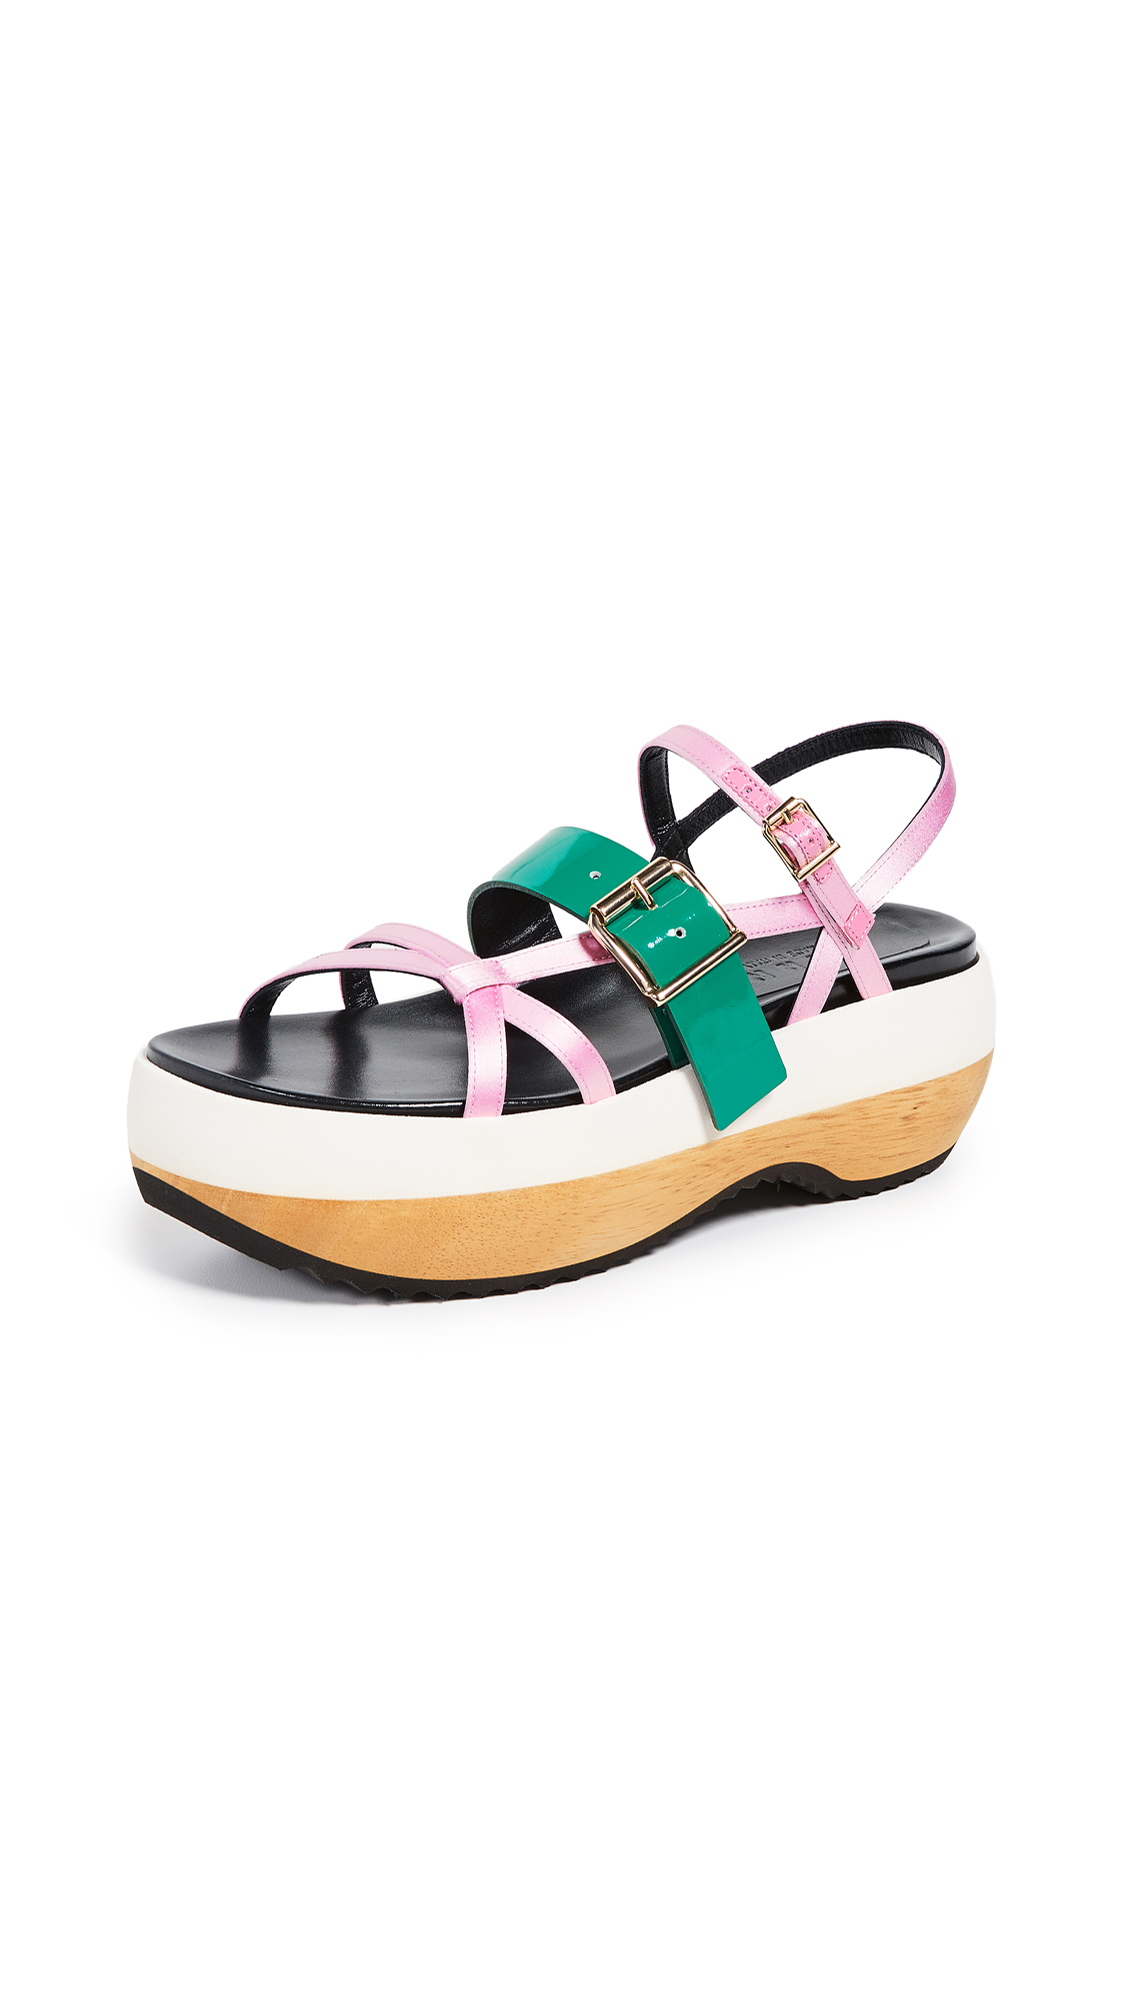 Marni Wedge Sandals - Light Pink/Forest Green